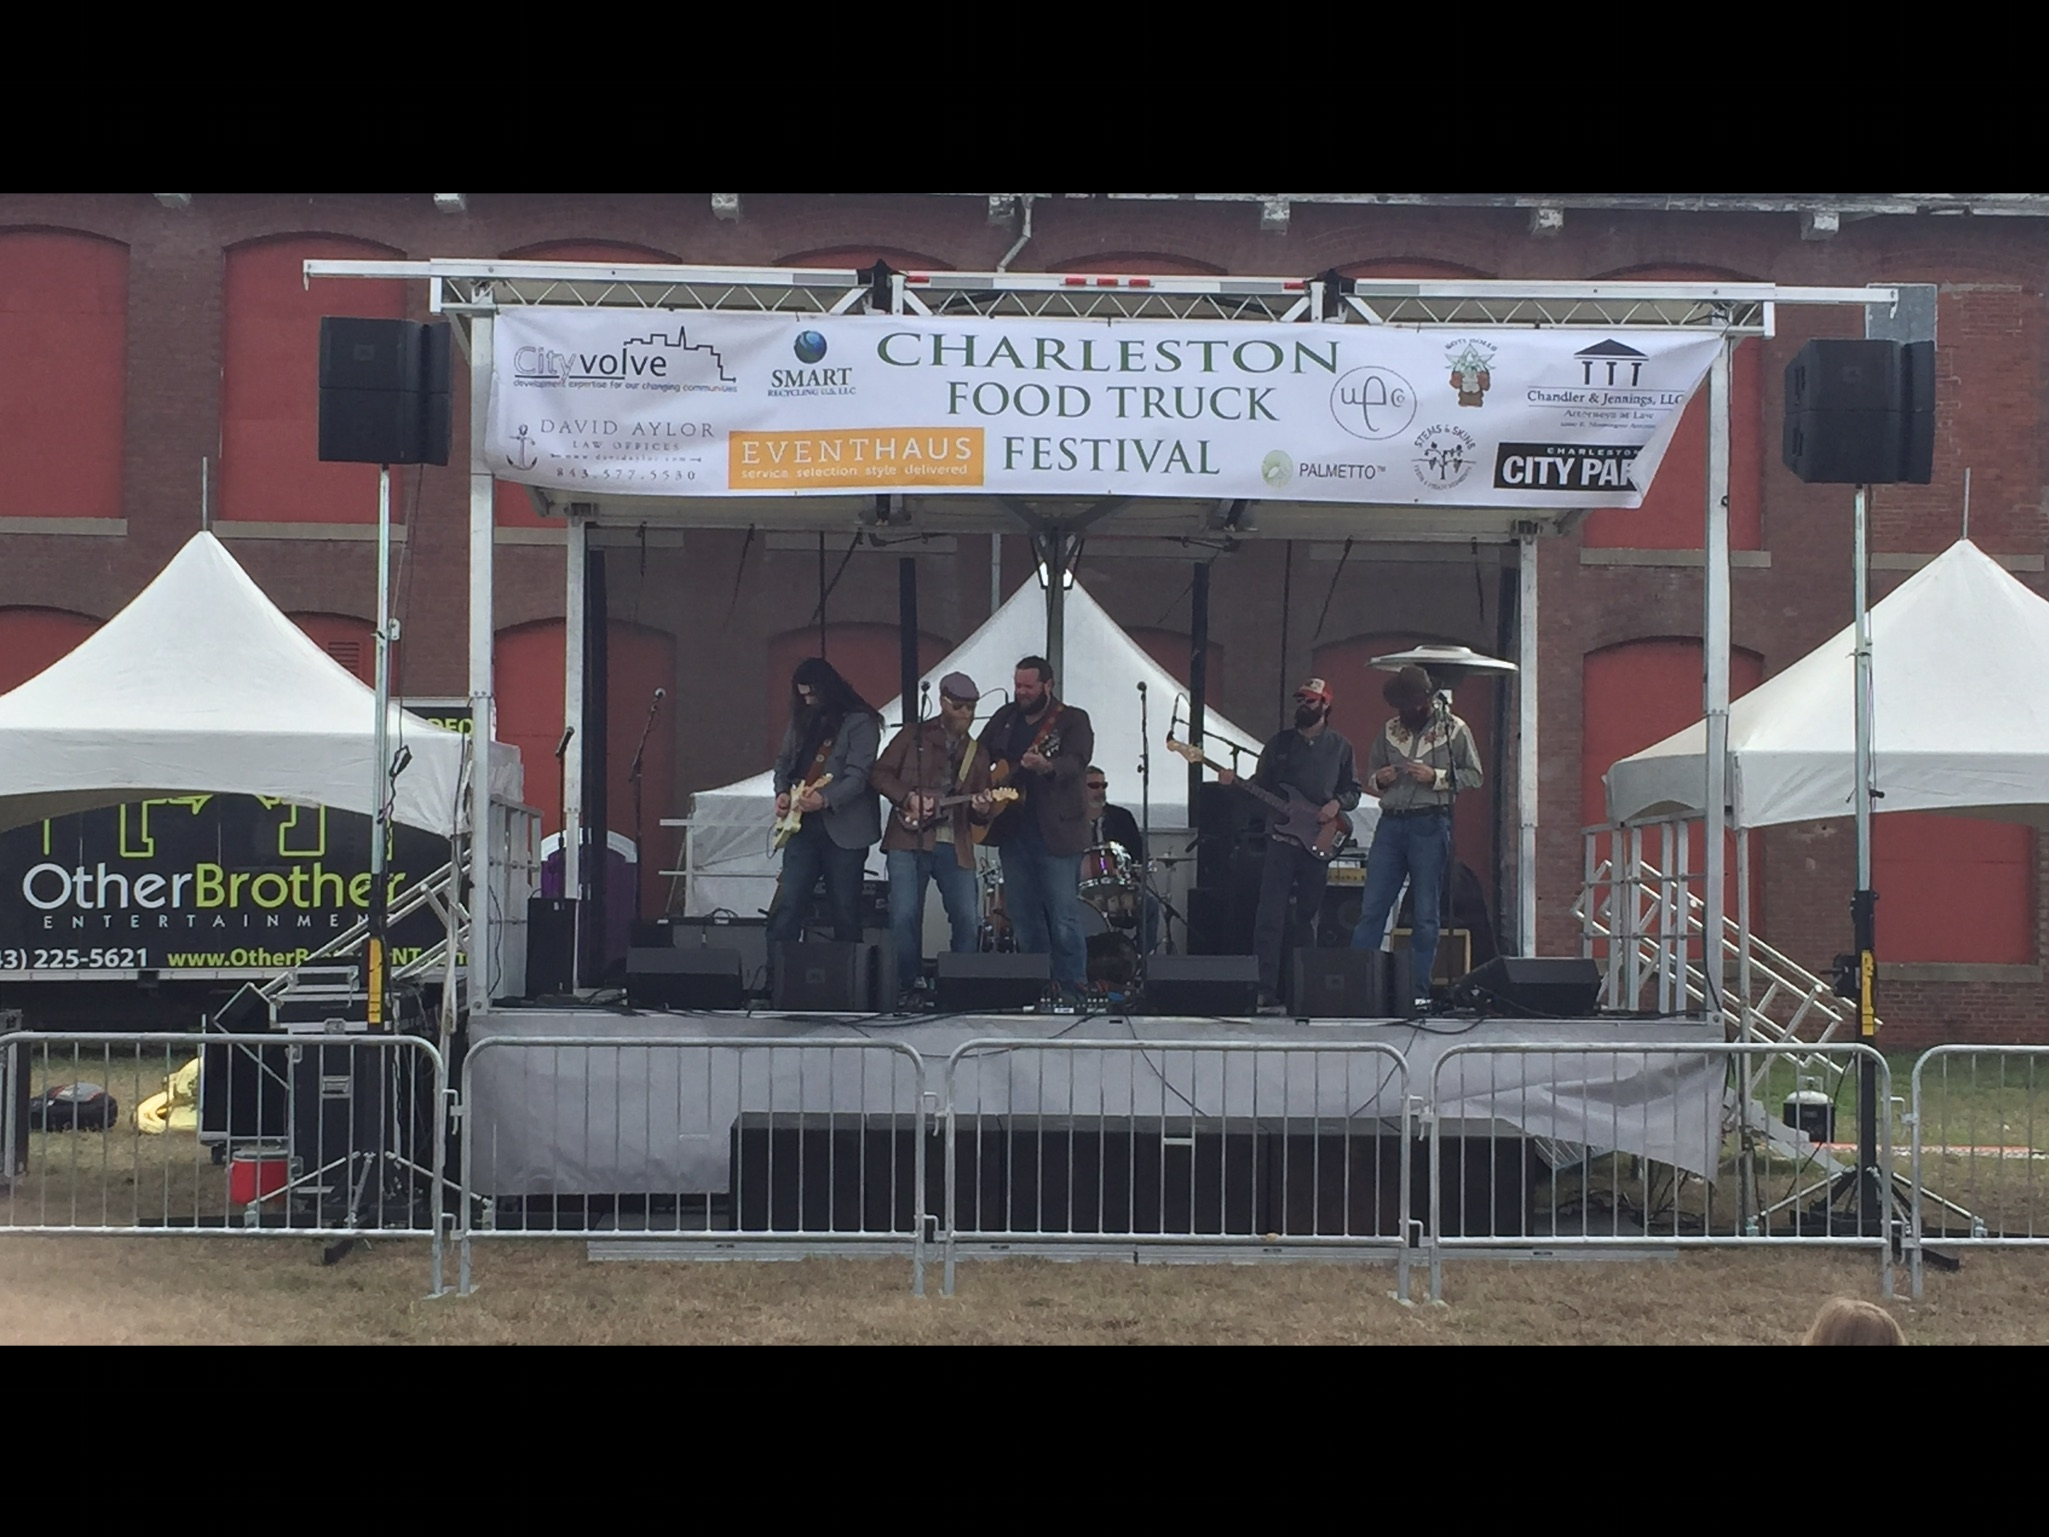 Great Music at the 6th Annual Food Truck Festival